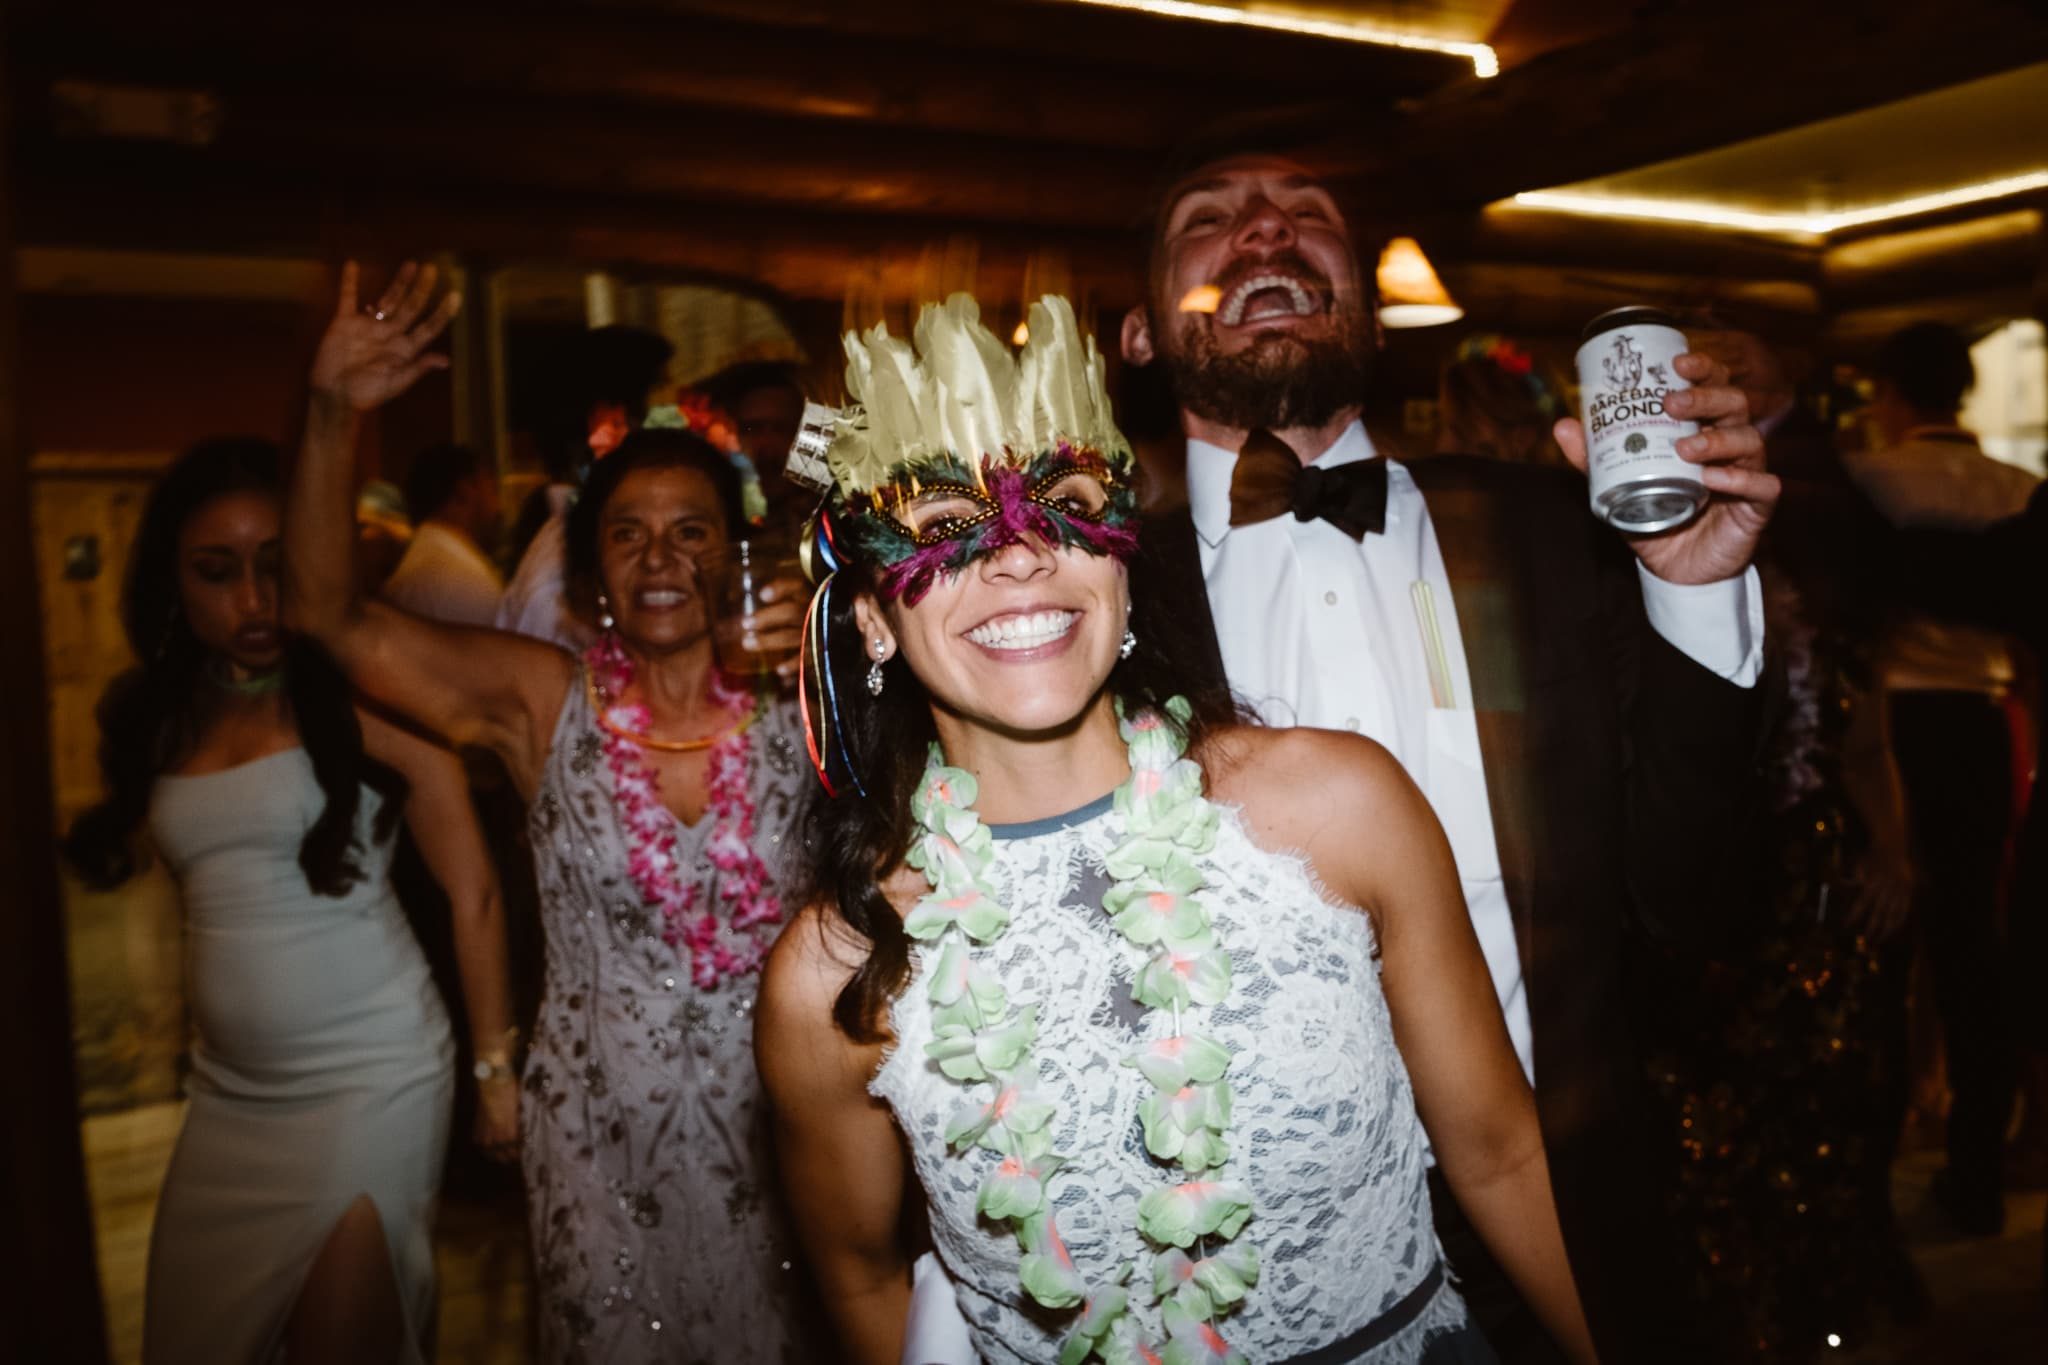 La hora loca reception dancing at Breckenridge Nordic Center wedding, Colorado wedding photographer